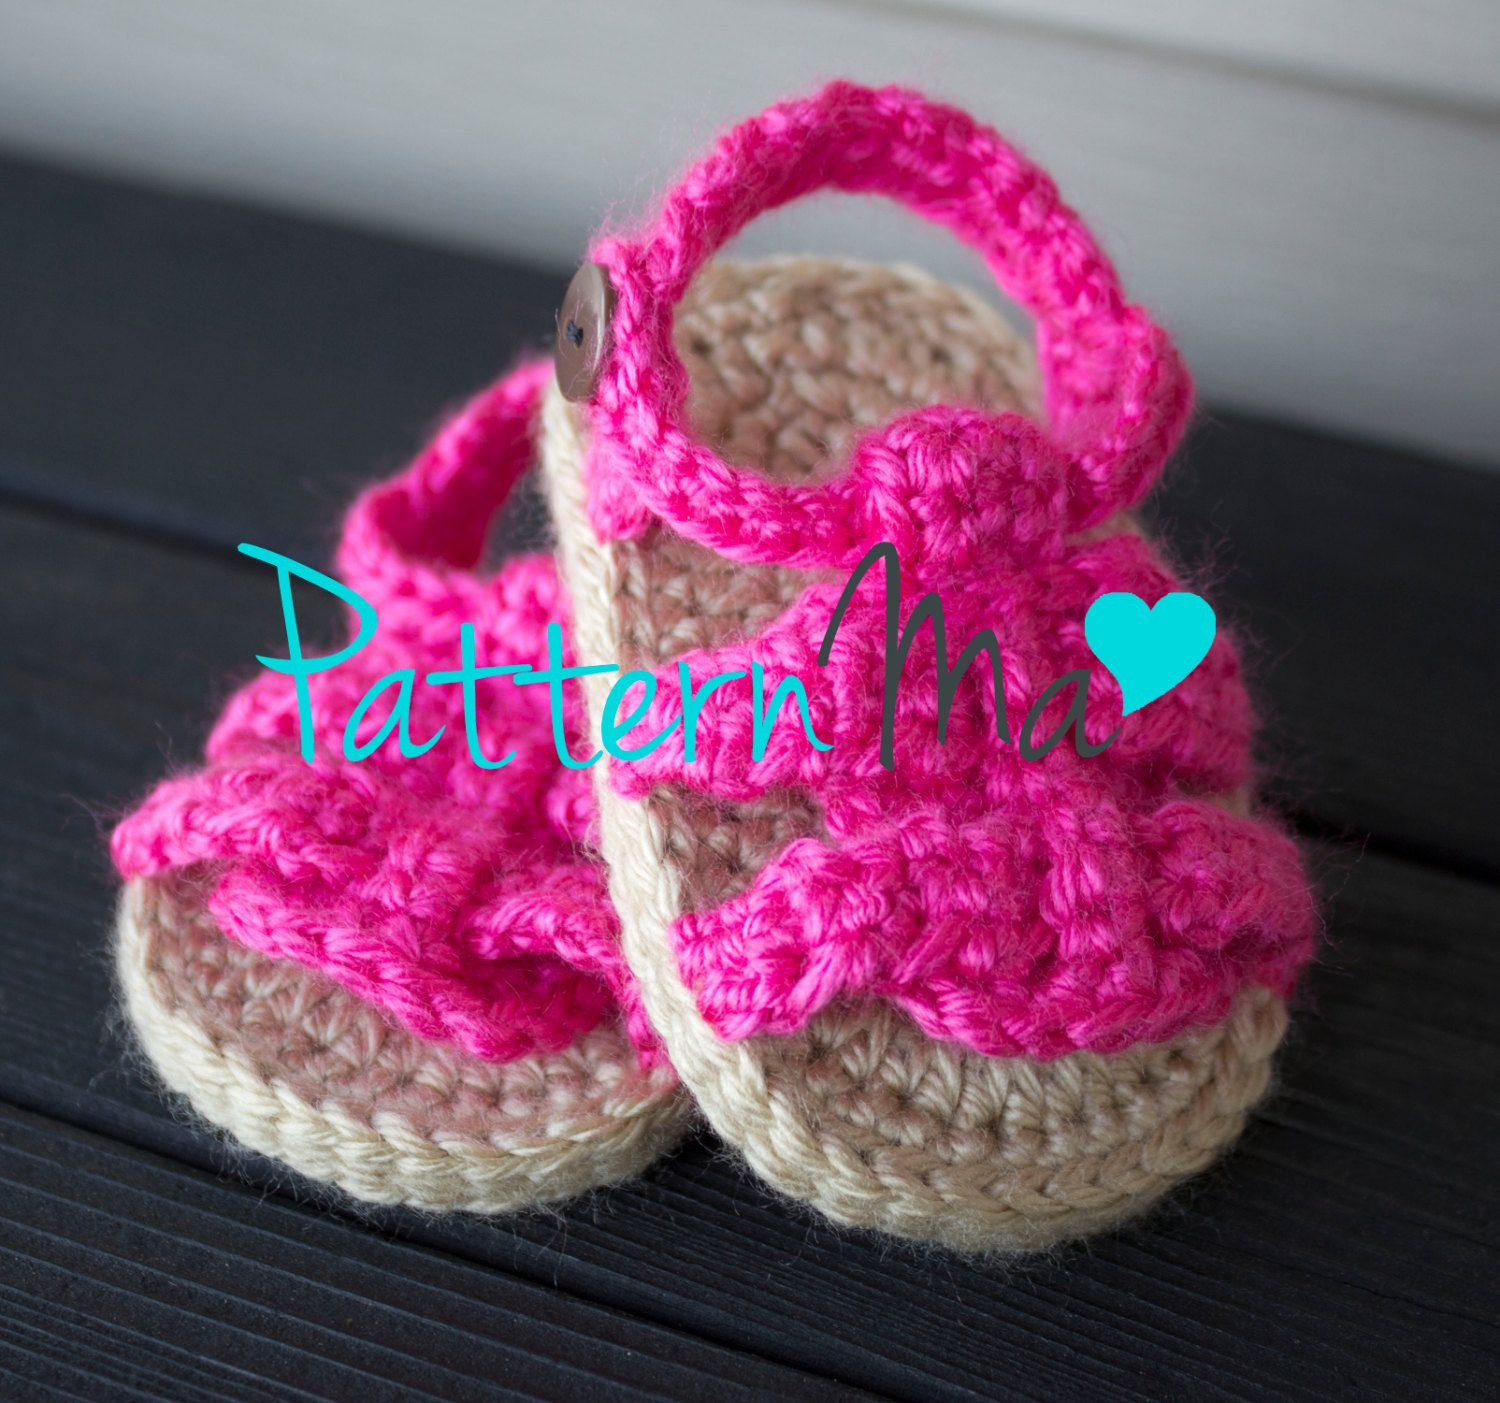 Crochet baby sandals pattern boy or girl 500 via etsy baby crochet baby sandals pattern boy or girl 500 via etsy bankloansurffo Image collections